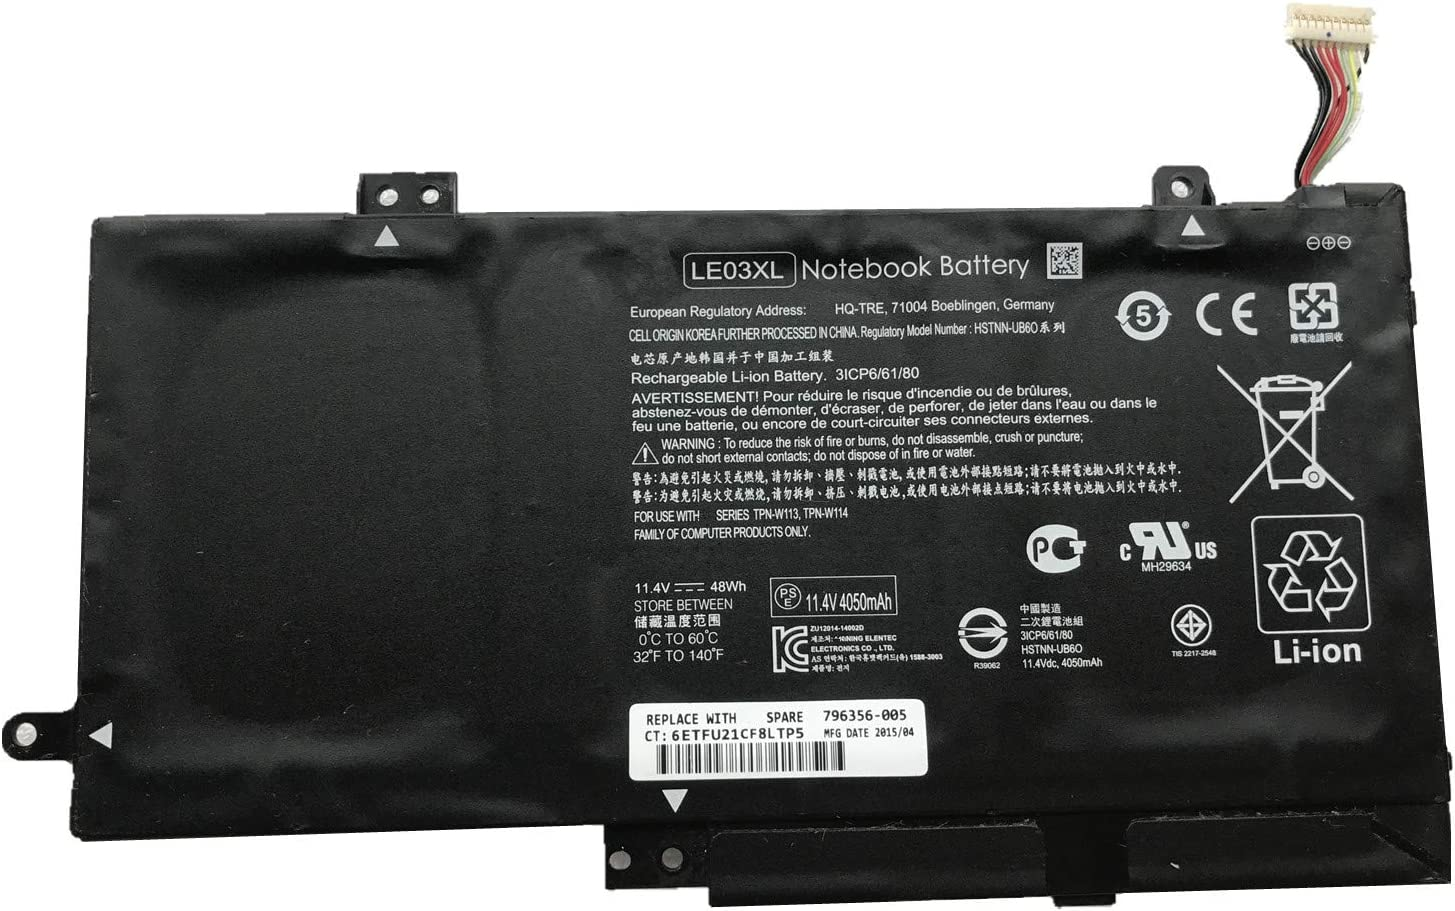 7XINbox 11.4V 48Wh LE03 35% OFF LE03XL Replacement Battery Laptop for All stores are sold HP